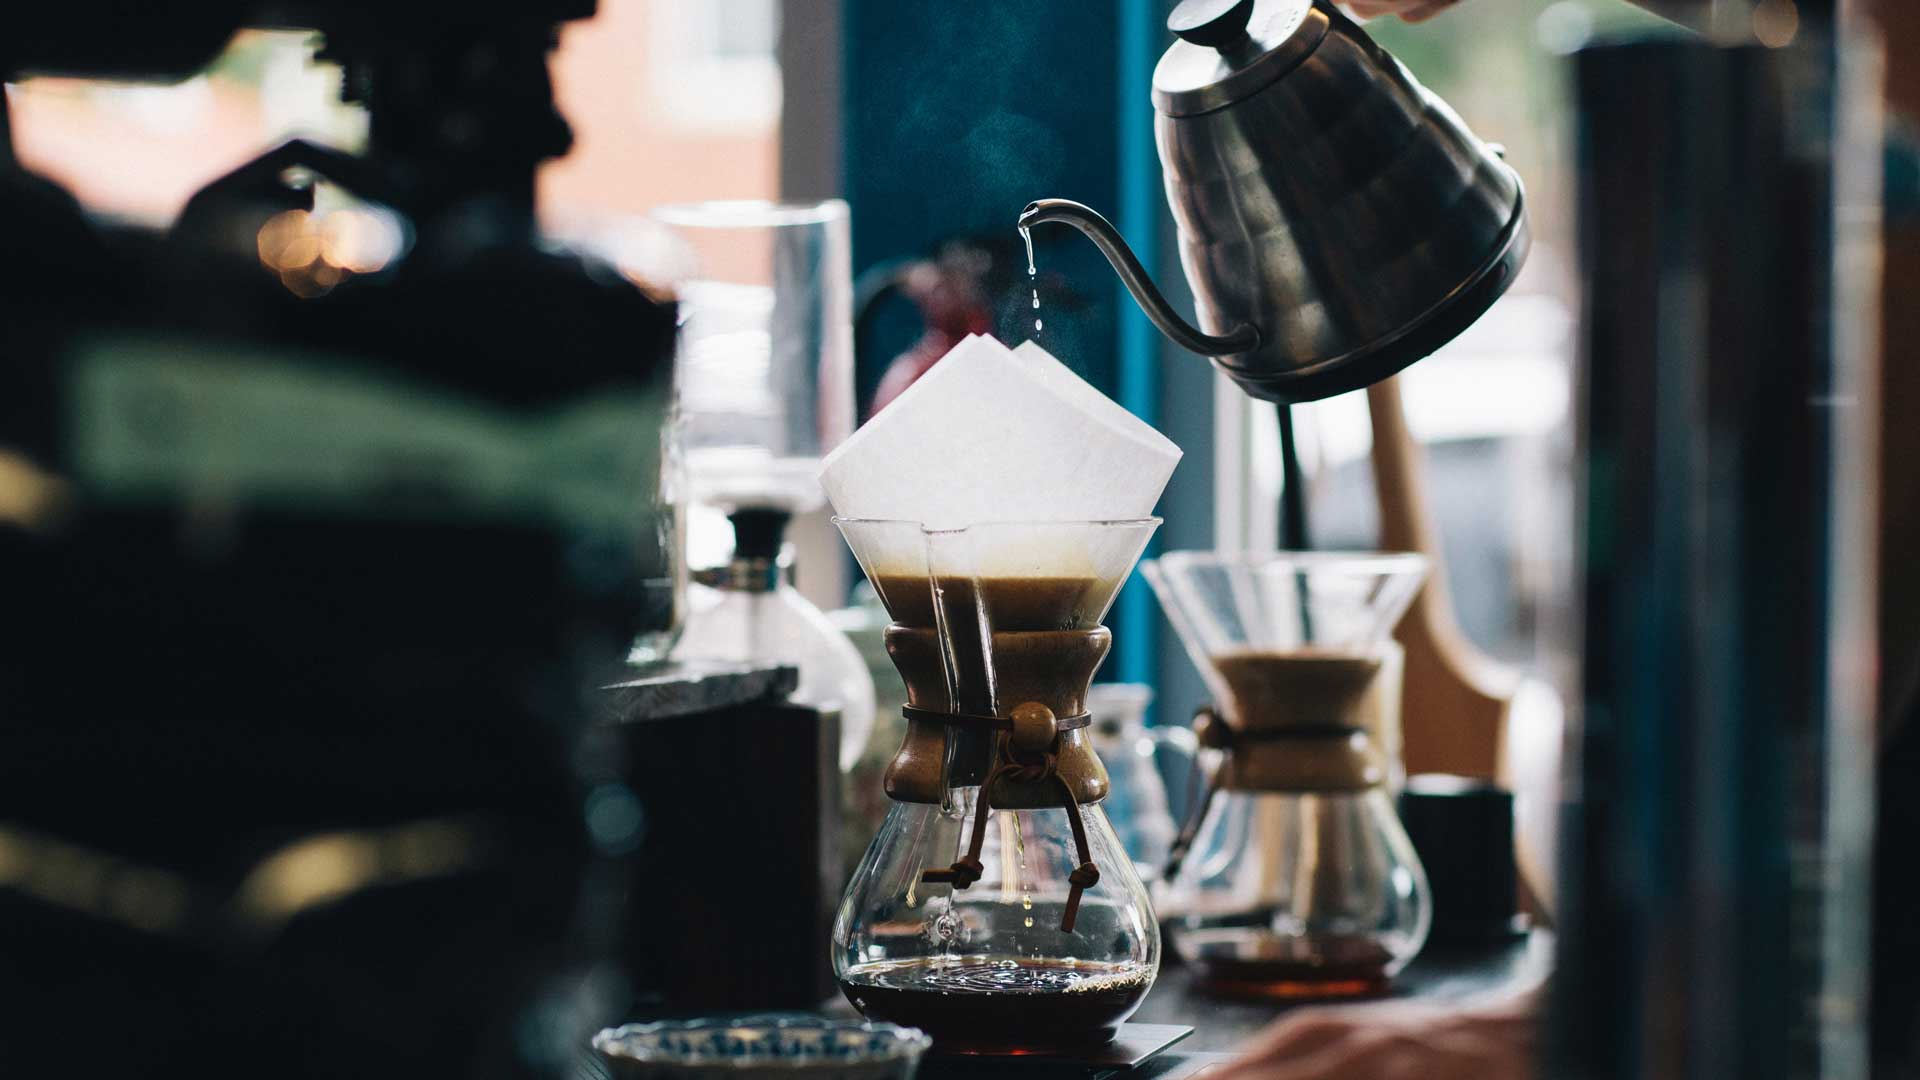 Good-Reasons-to-Begin-Brewing-Pour-Over-Coffee-at-Home-on-TheSunrisePost